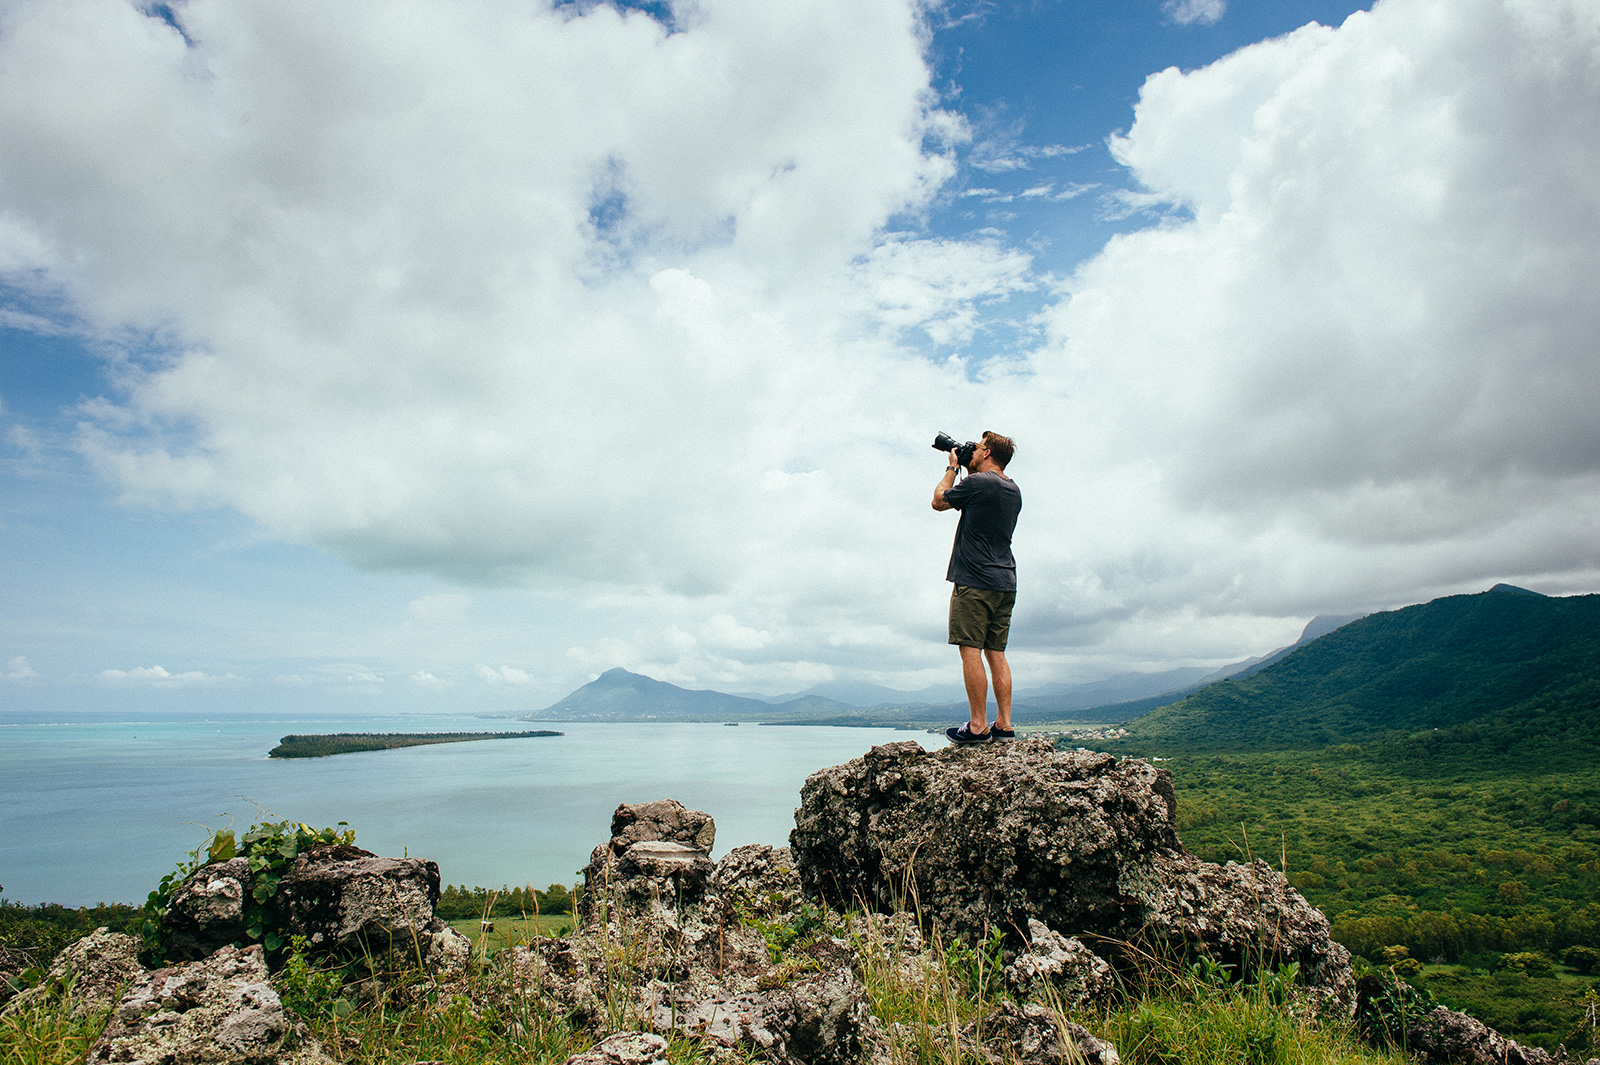 Photographer on location in Mauritius